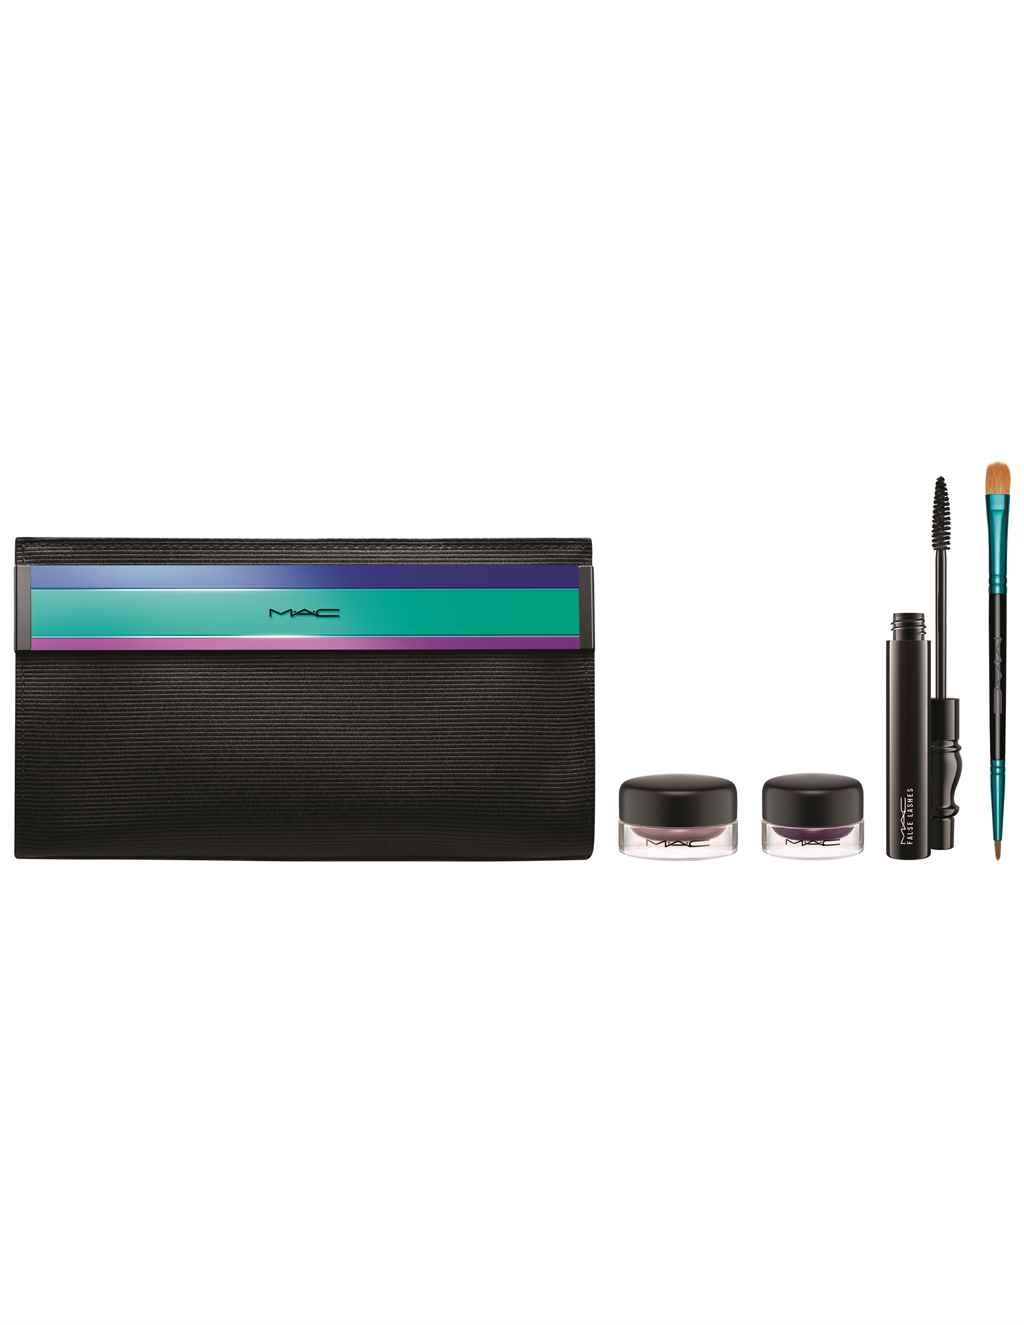 MAC_HolidayKit_EyeLookBag_EnchantedEvePlums_300dpiCMYK